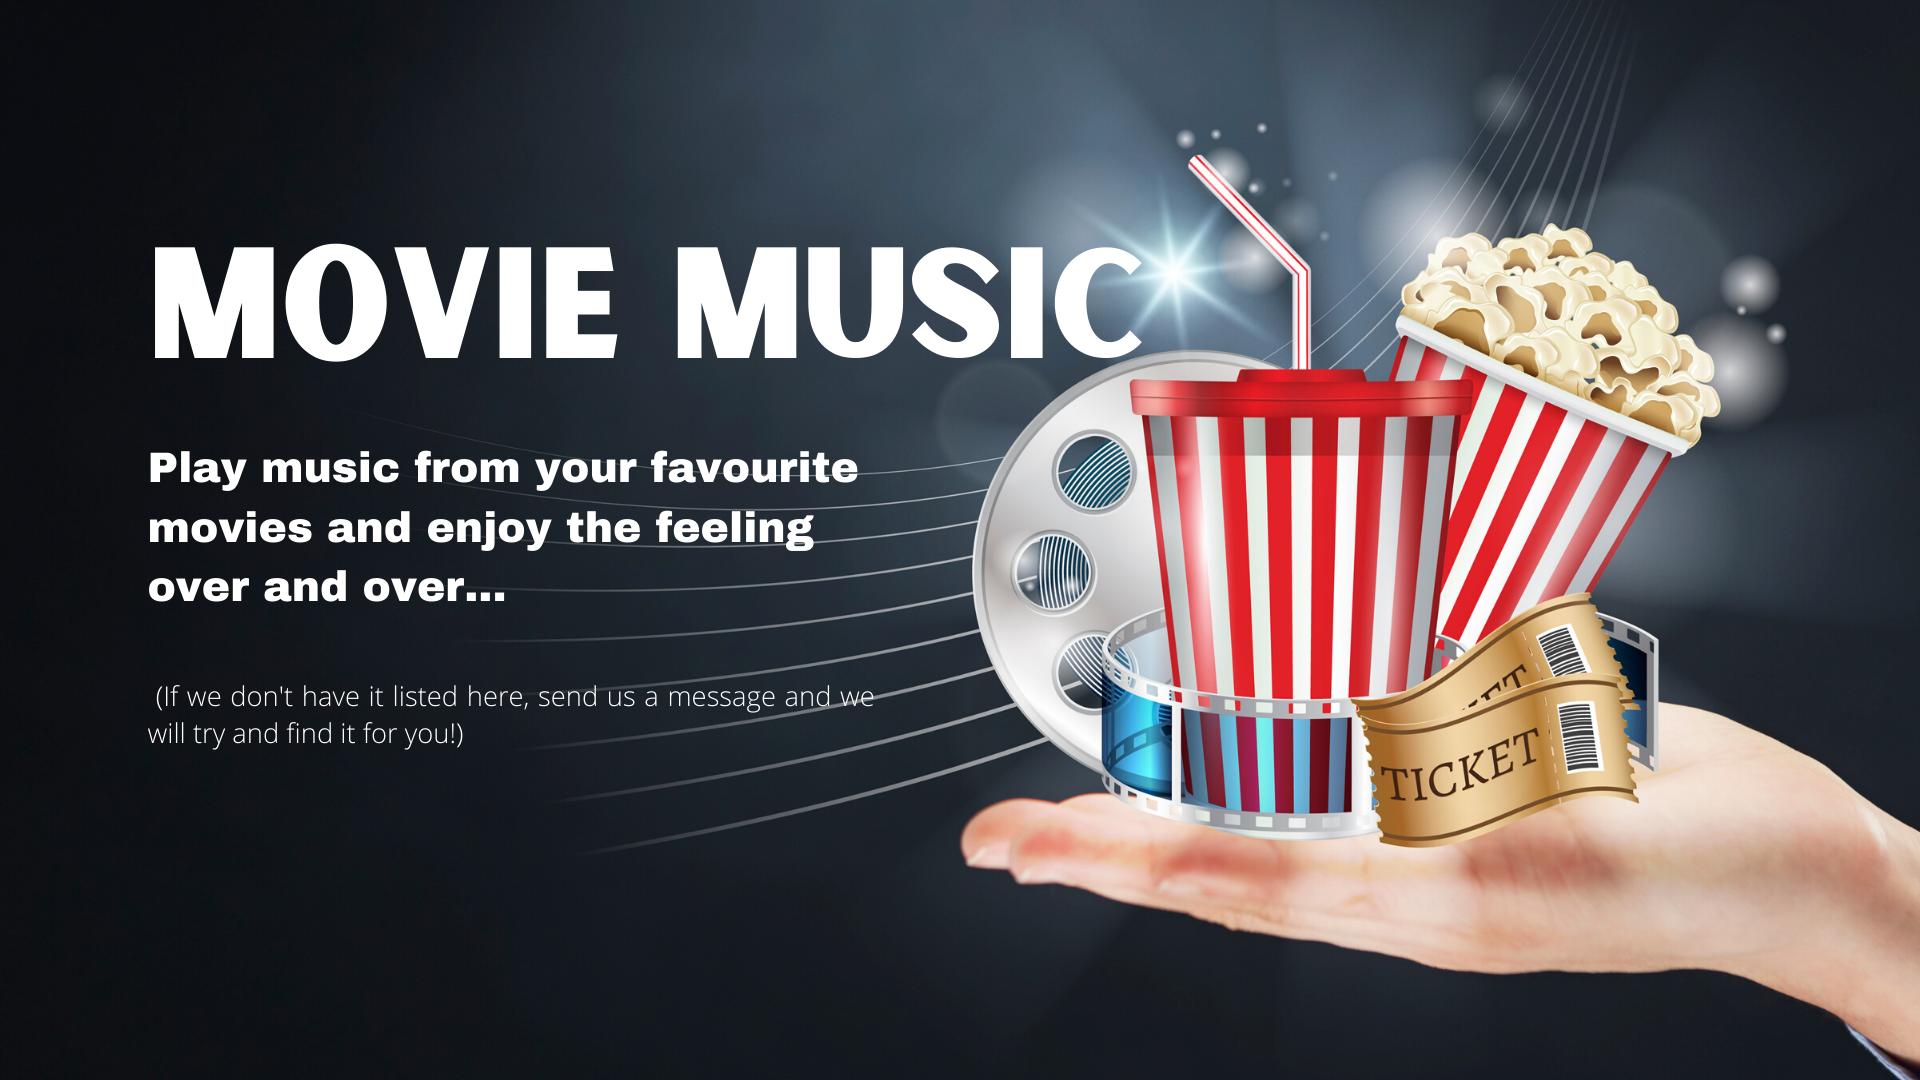 MOVIE_MUSIC_Play_music_from_your_favouri